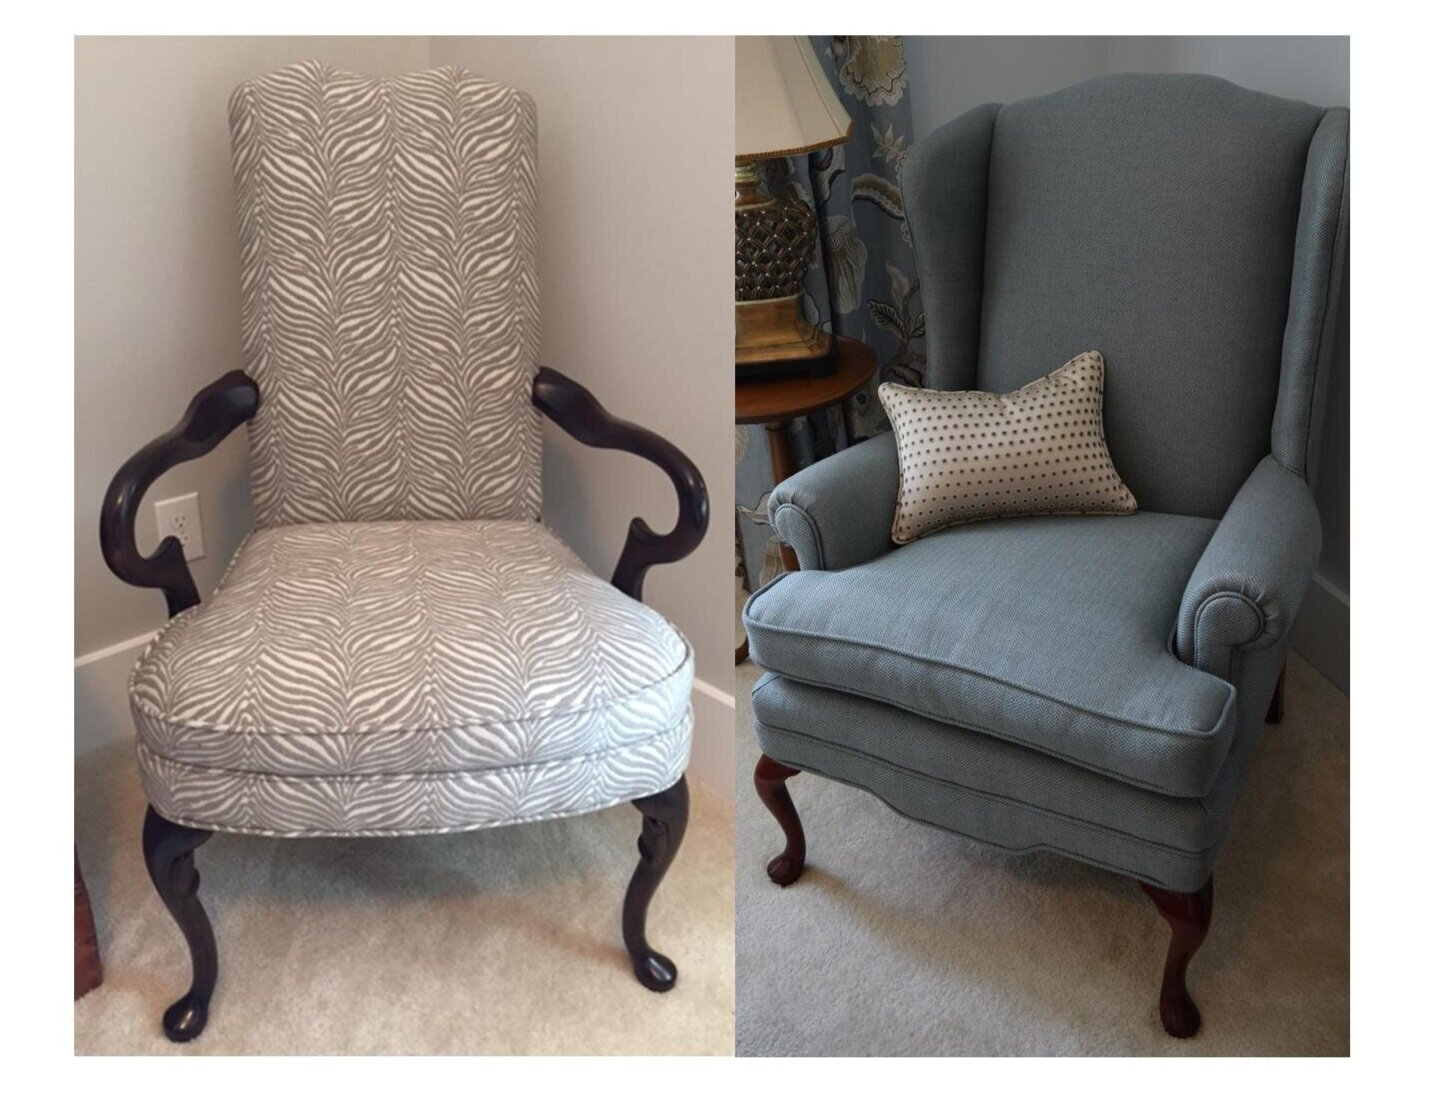 Antique Martha Washington & Wing Back Chairs by First Impressions